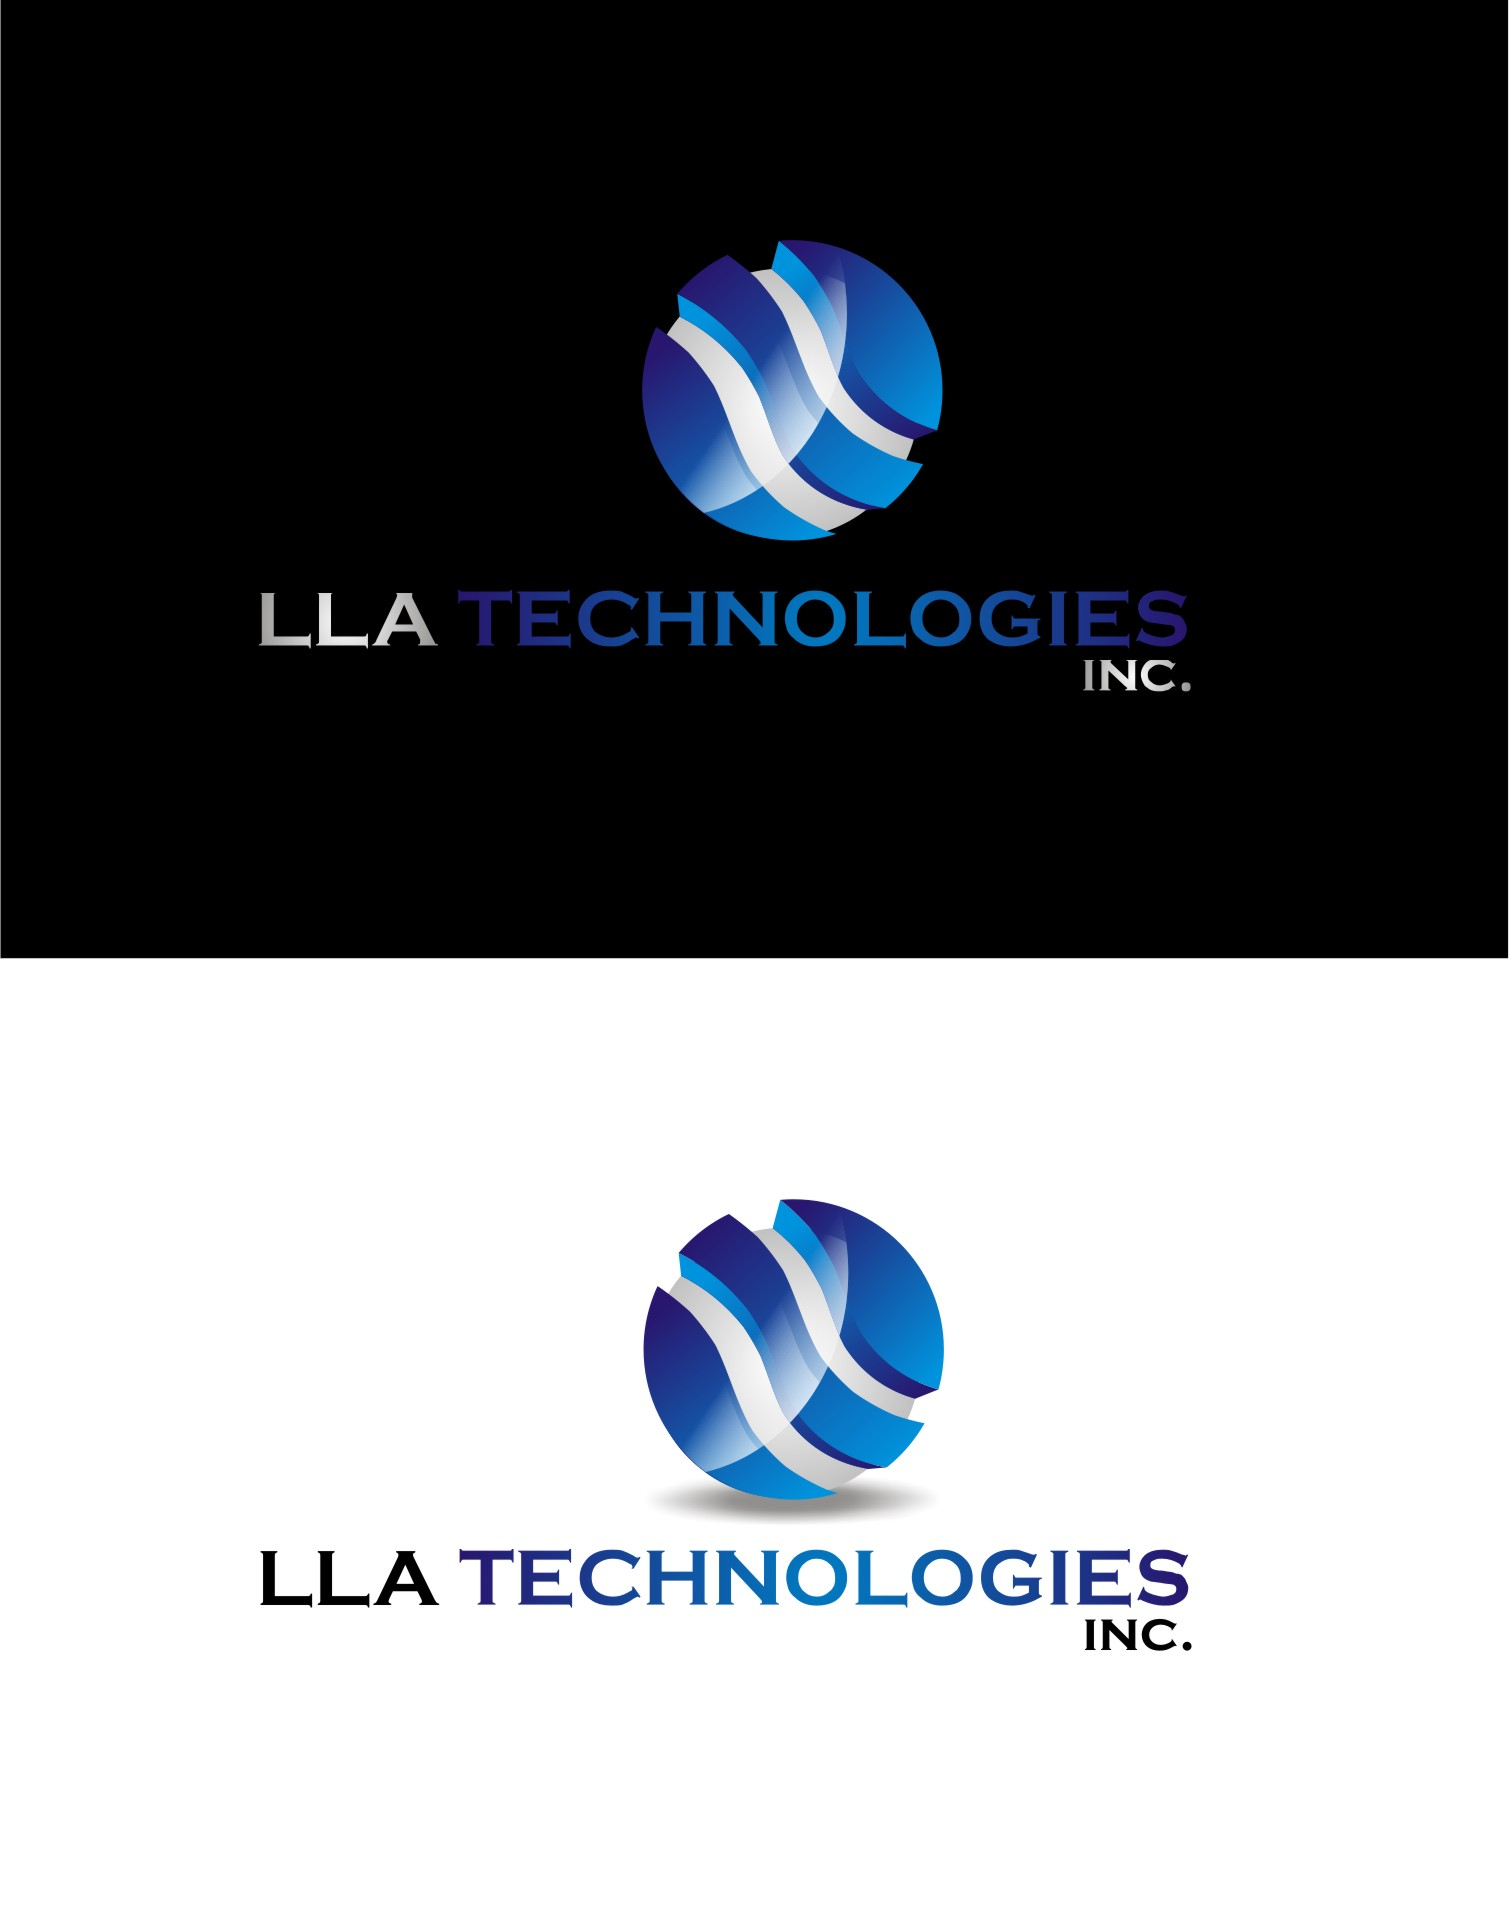 Logo Design by Yuda Hermawan - Entry No. 167 in the Logo Design Contest Inspiring Logo Design for LLA Technologies Inc..